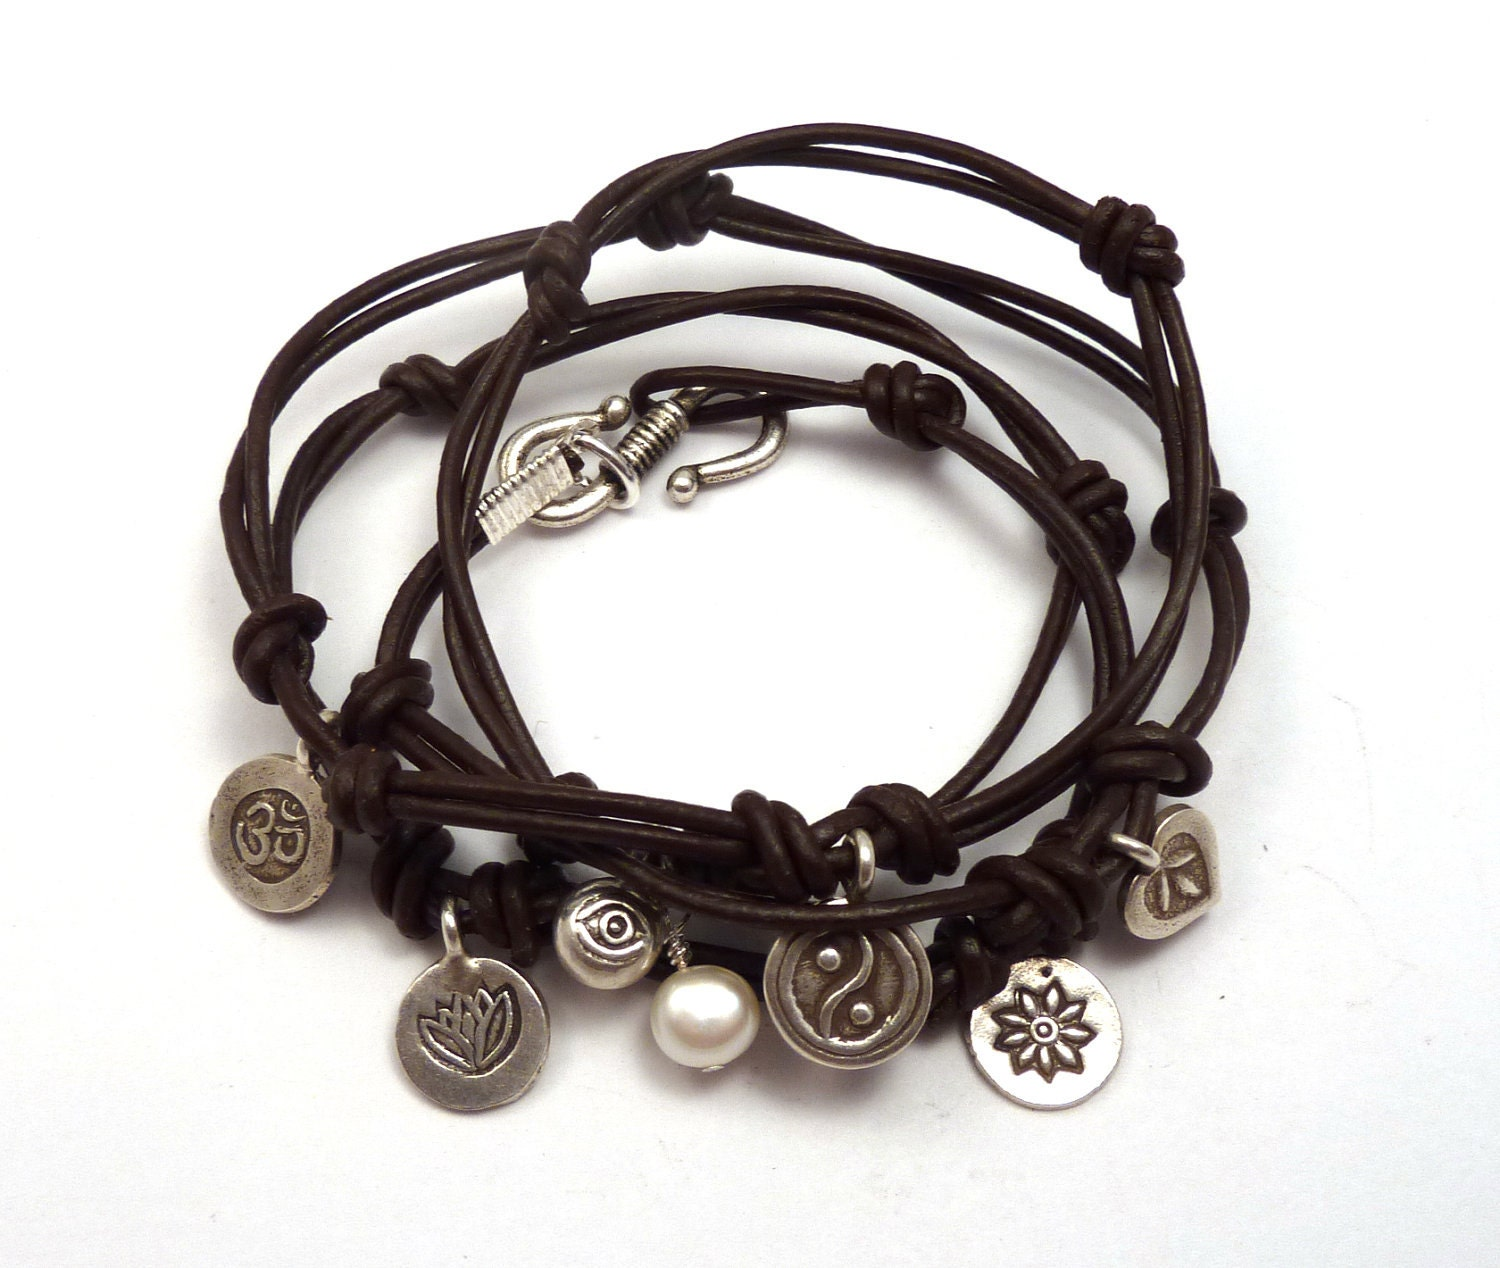 Leather Wrap Bracelet With Charms: Knotted Leather Wrap Bracelet With Karen Hill By